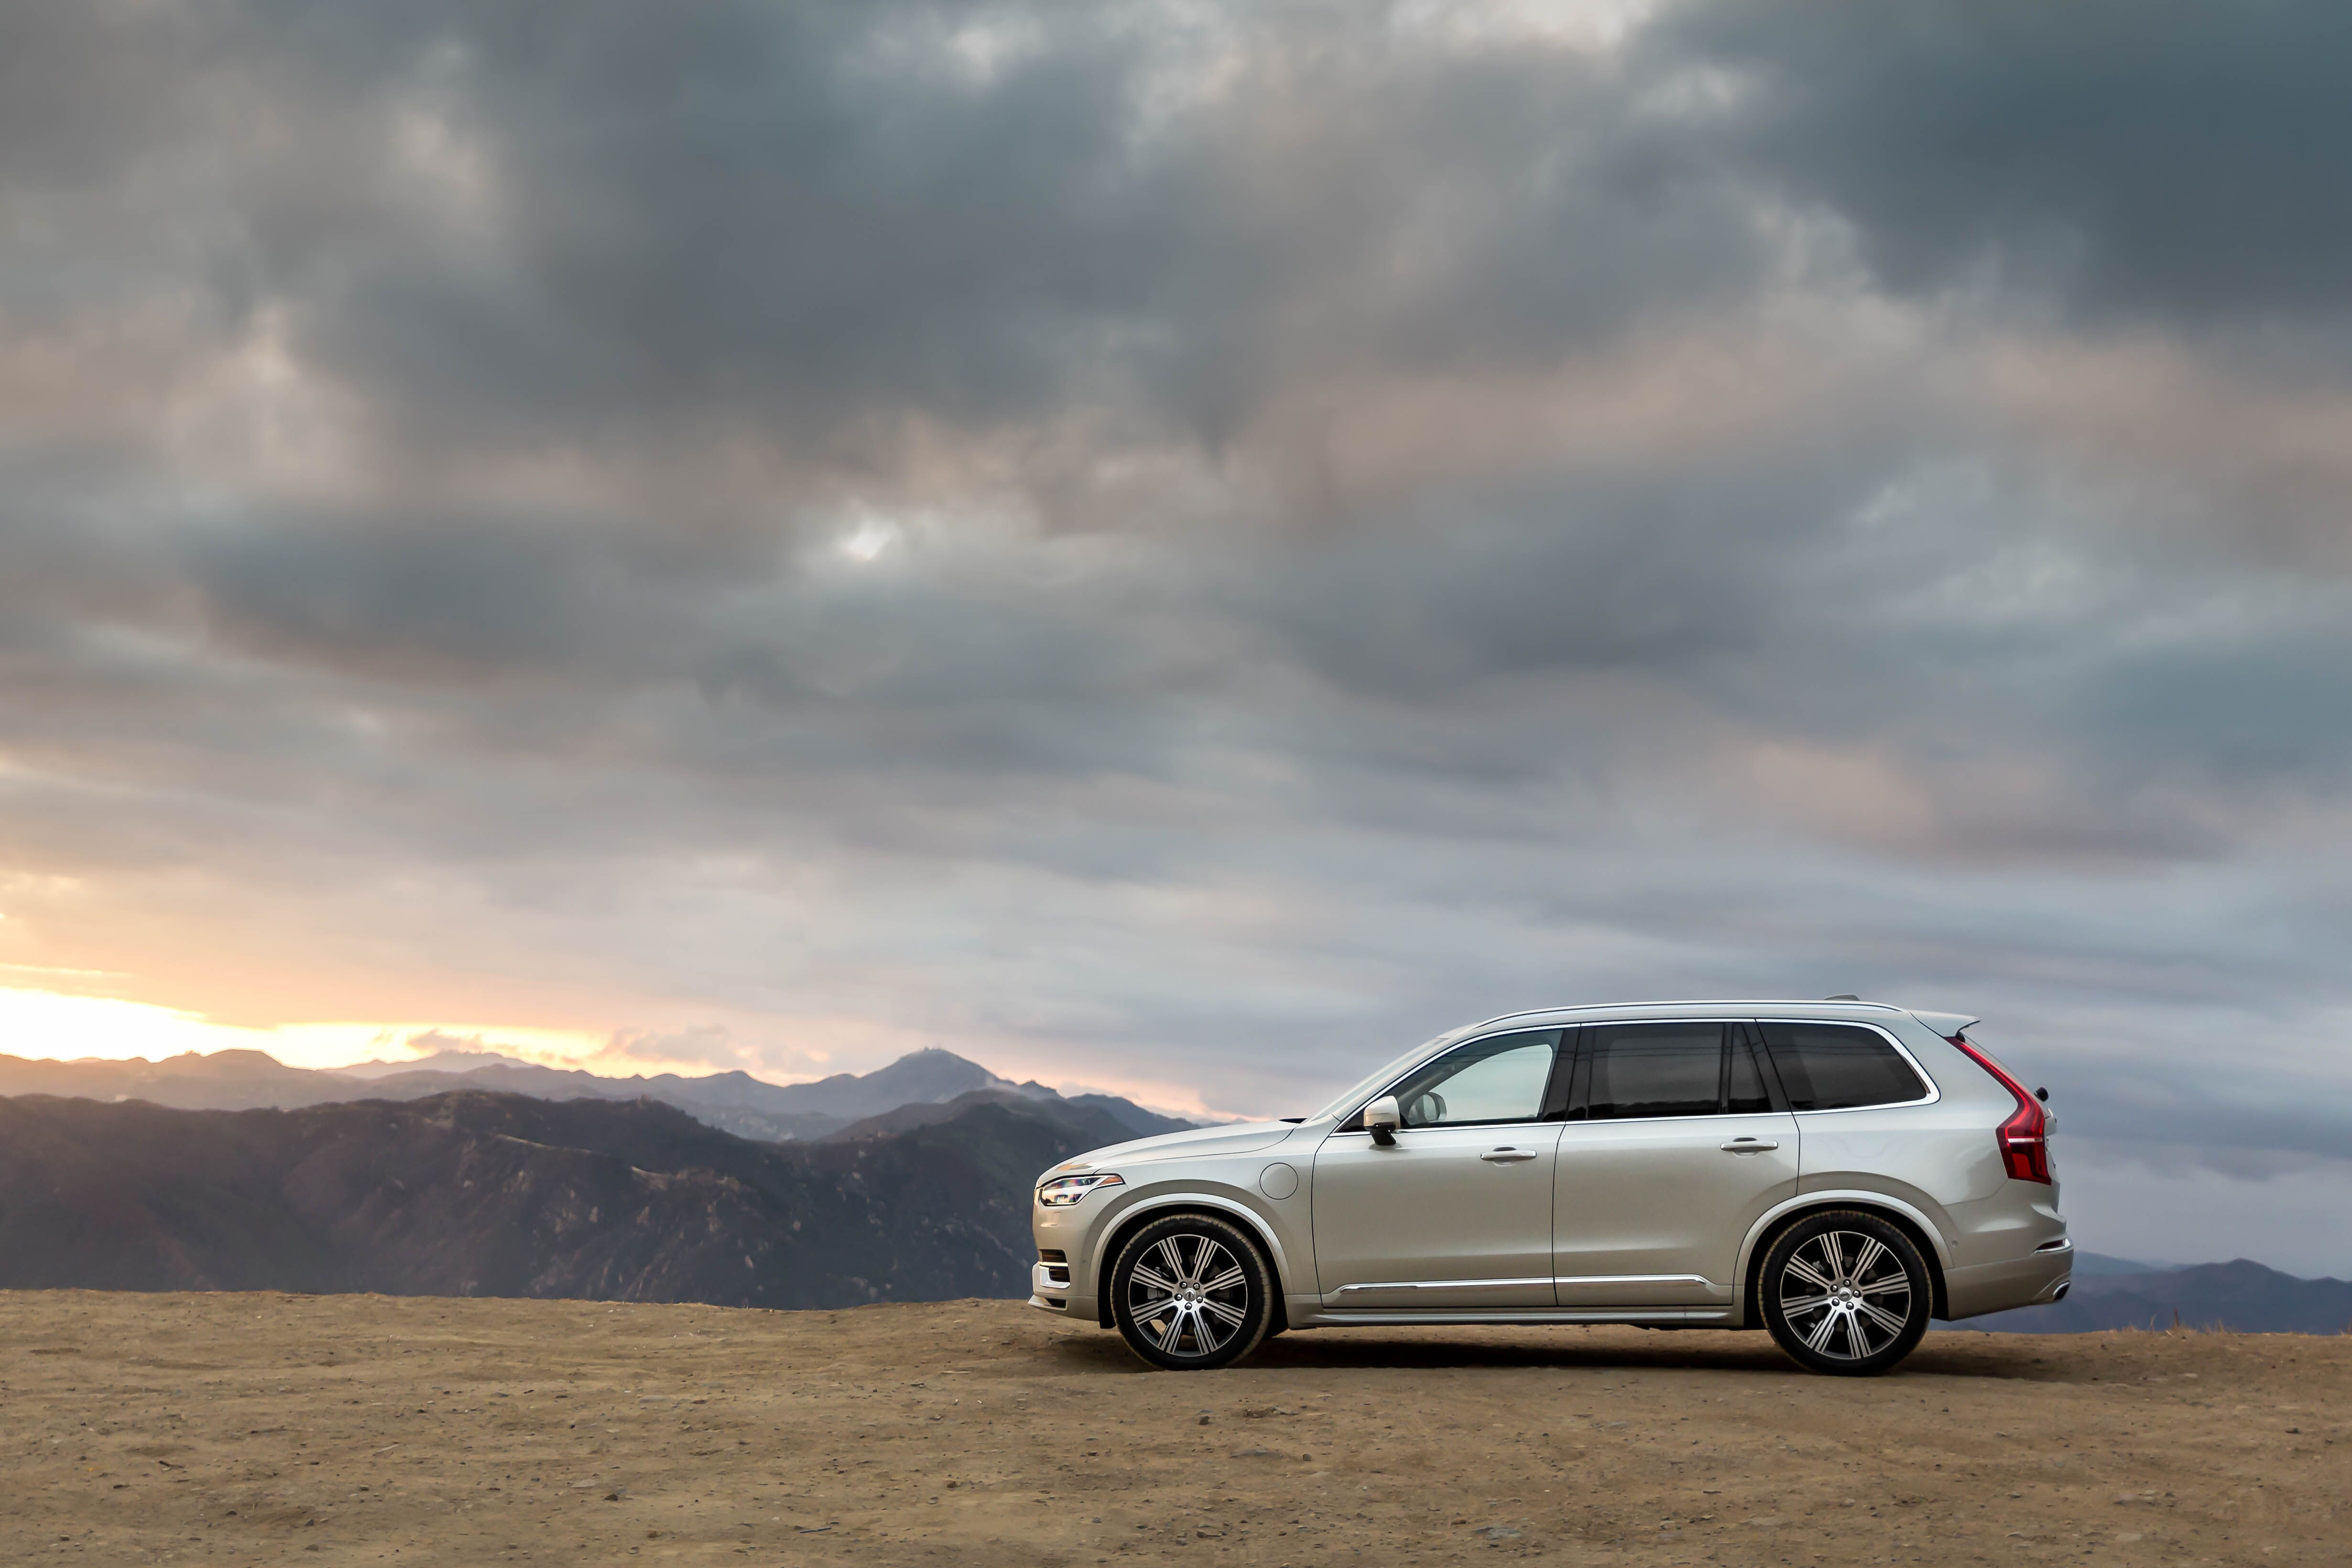 Safer For People Safer For The Planet With A Zero Emission Drive Mode And A Range Of Advanced Features The Volvo Xc90 T8 Plug In In 2020 Luxury Suv Volvo